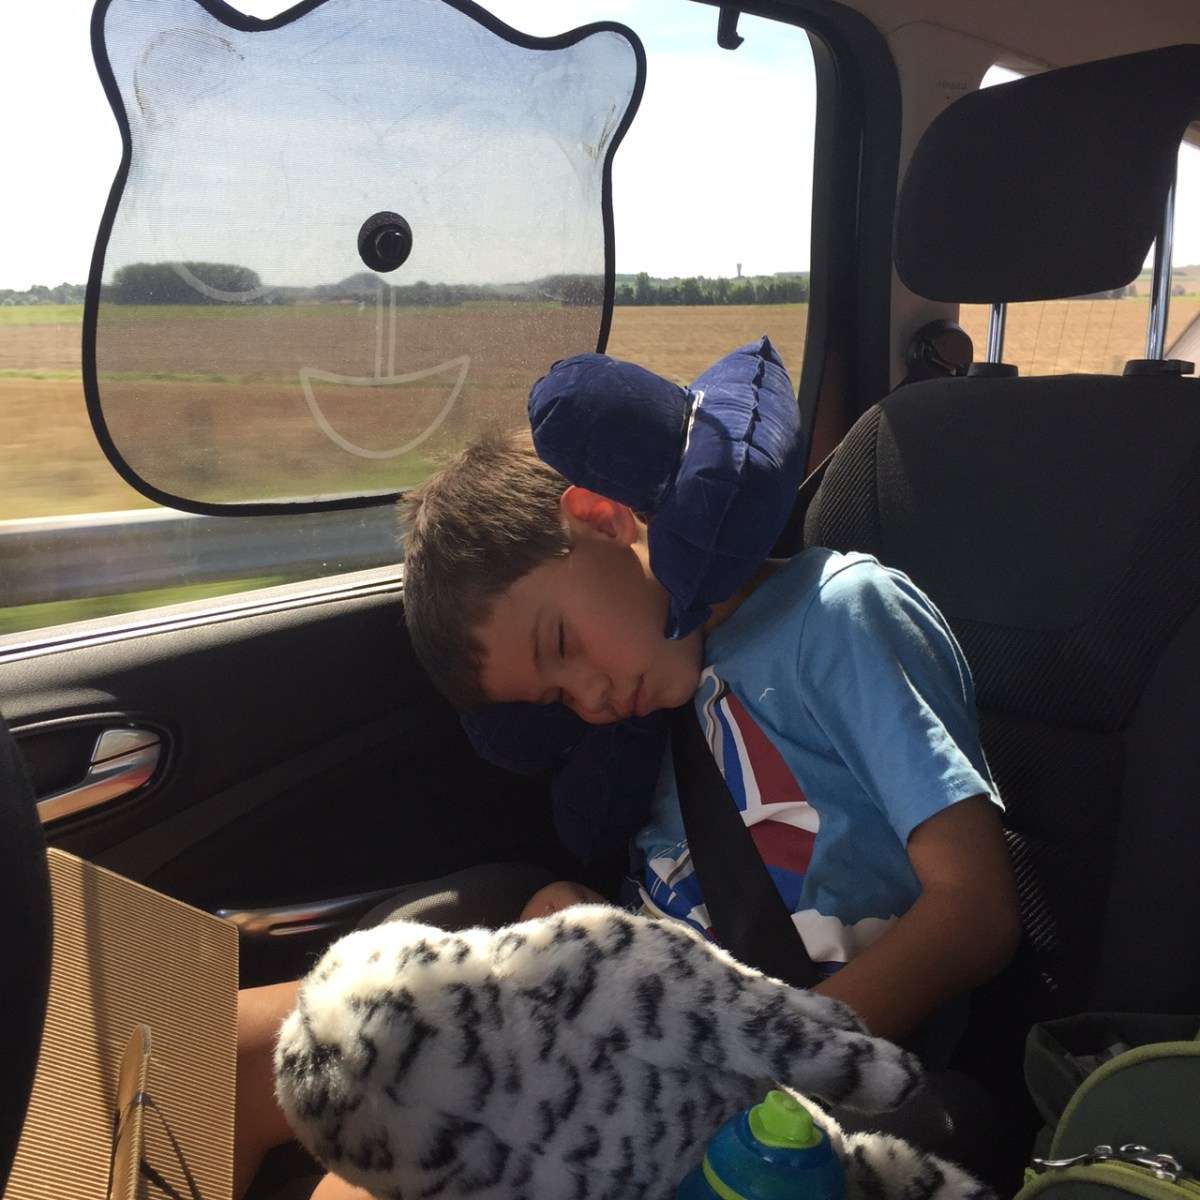 6 top tips for surviving long road trips with kids